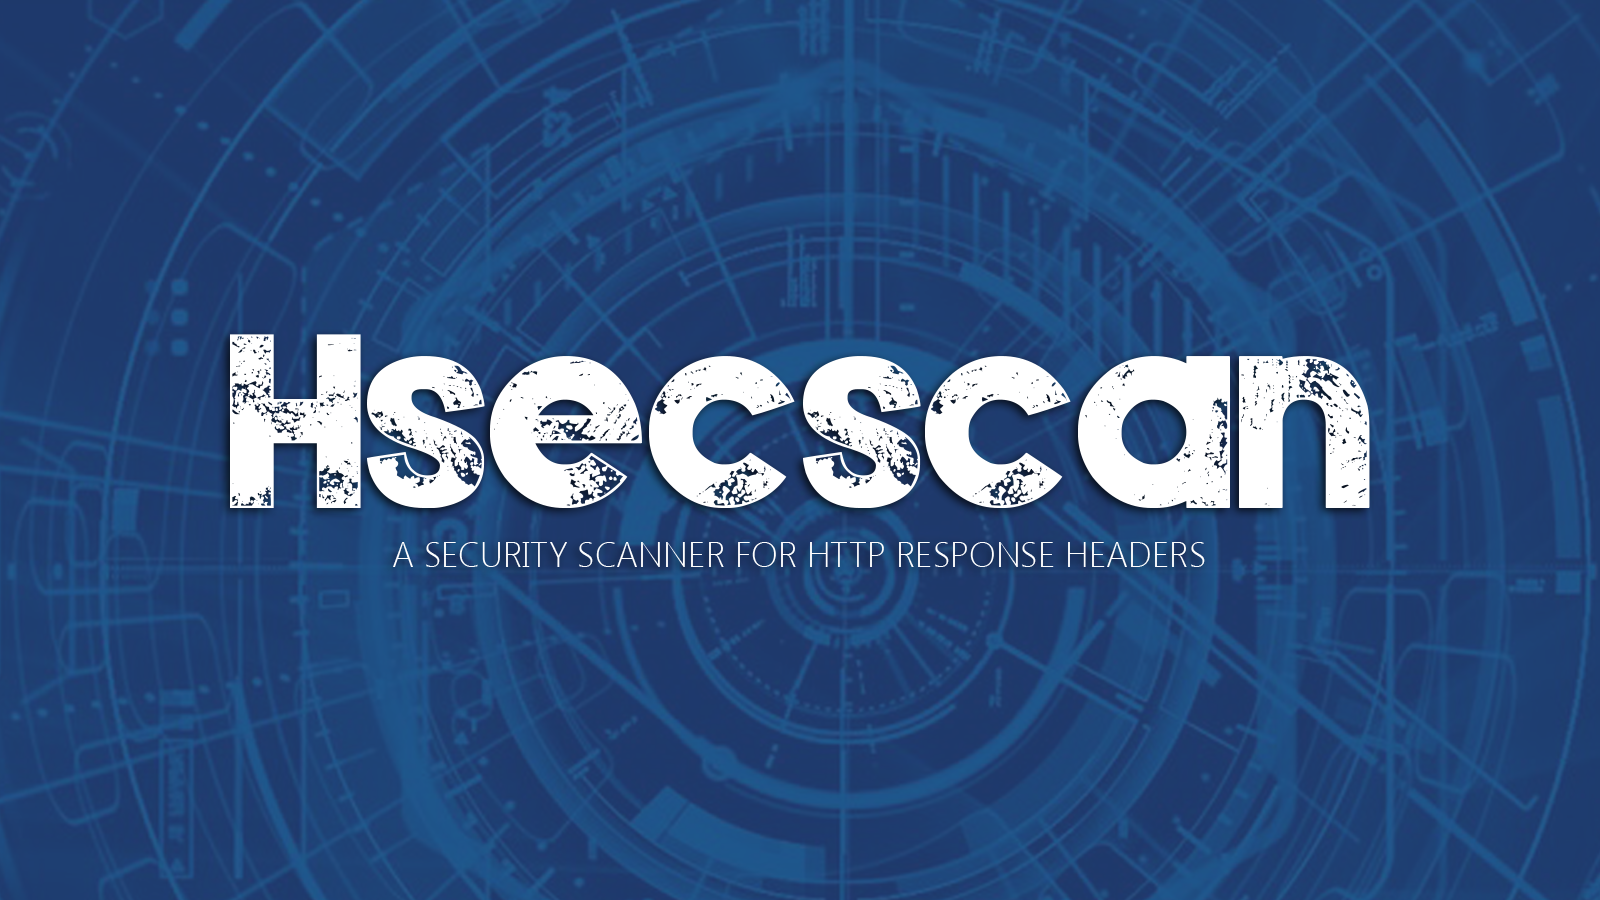 Hsecscan - A Security Scanner for HTTP Response Headers